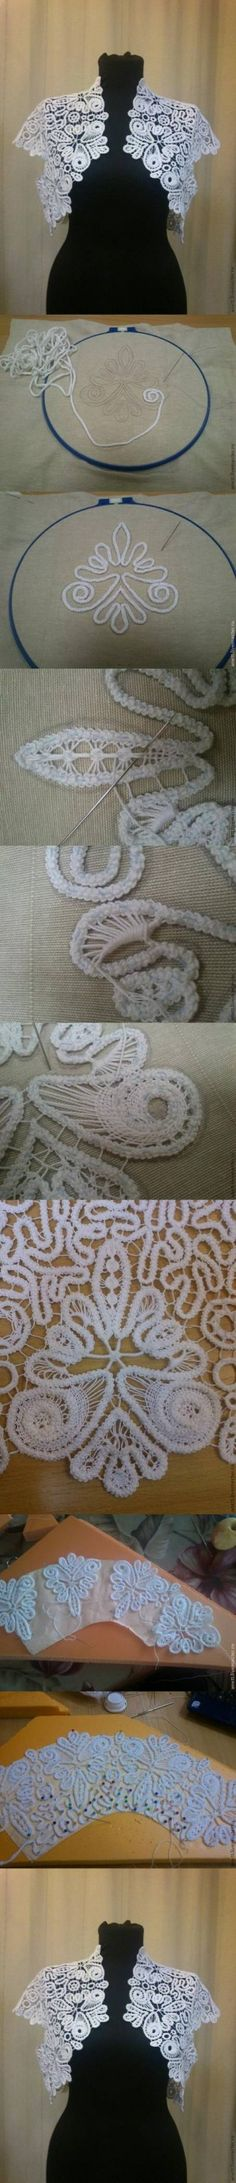 DIY Romanian Lace DIY Projects